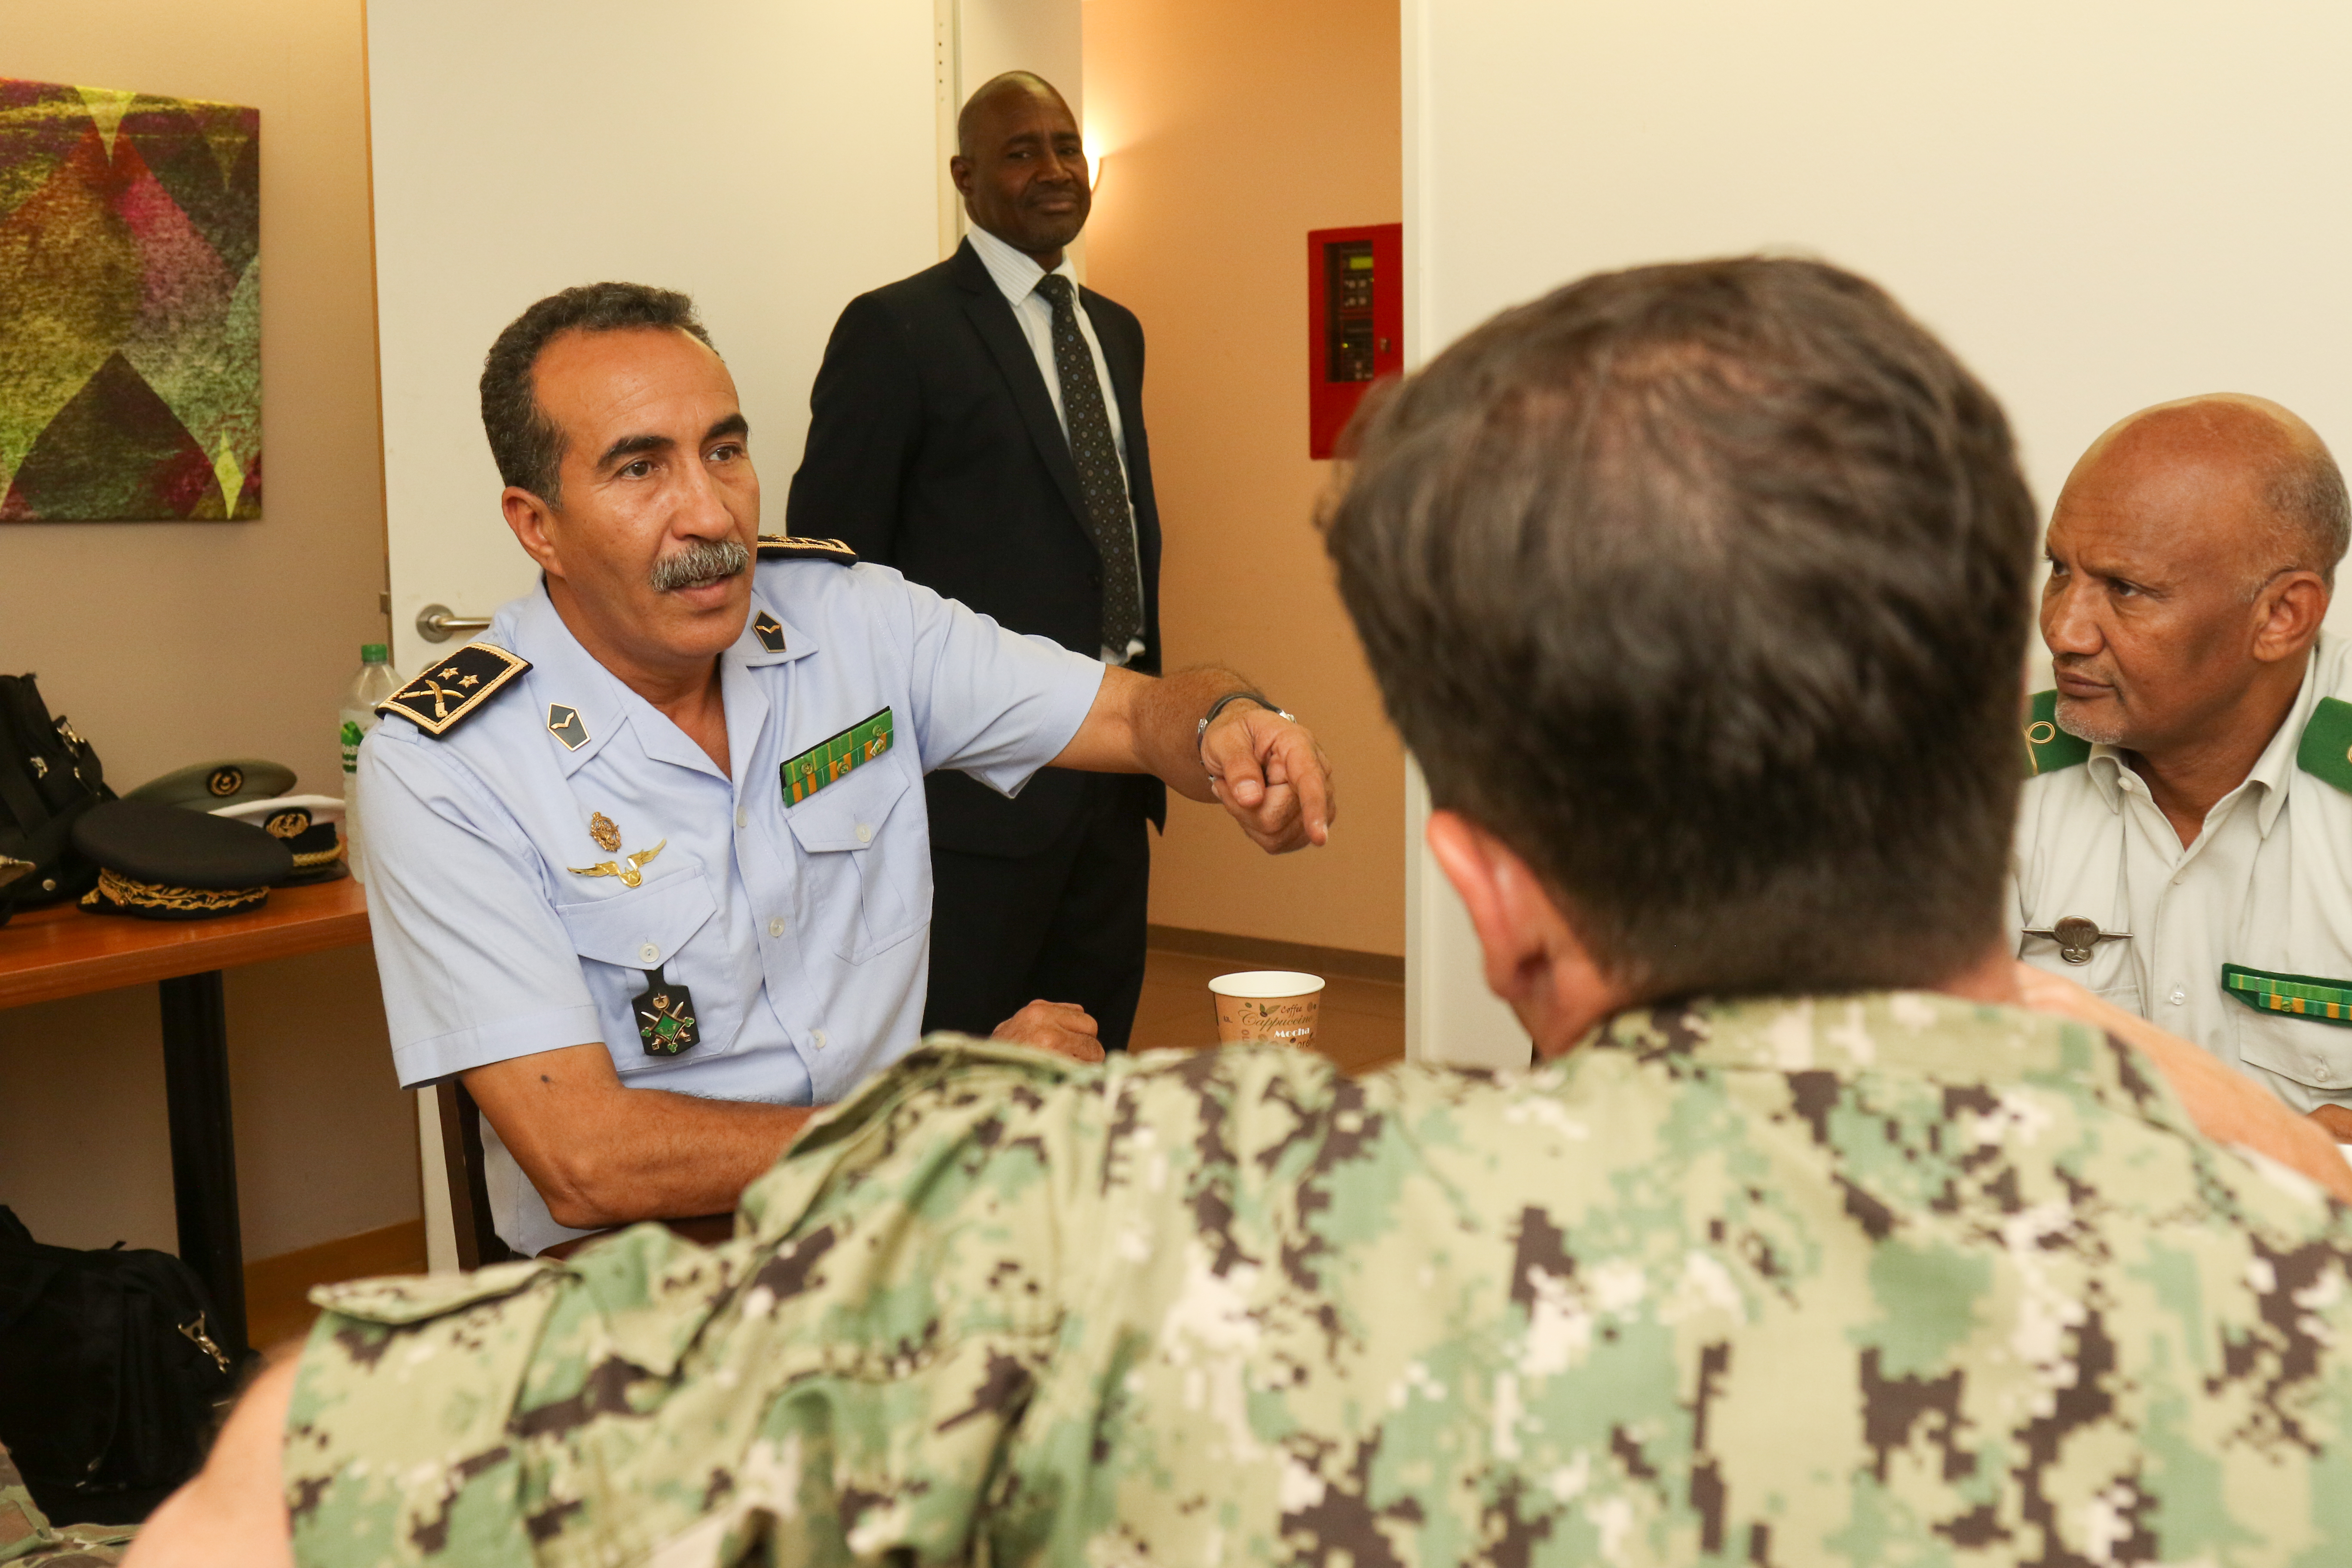 Brig. Gen. Mohamed Lehreitani, Chief of the Mauritanian AirForce, speaks with personnel from U.S. Africa Command and its components, during the annual Mauritanian Country Cooperation meeting held in Stuttgart, Germany July 11-12, 2017. The purpose of the country cooperation meeting is to coordinate defense planning efforts for the upcoming fiscal year and identify areas for future cooperation. (U.S. Navy Photo by Mass Communications Specialist 2nd Class (SW/AW) Dominique J. Shelton RELEASED)